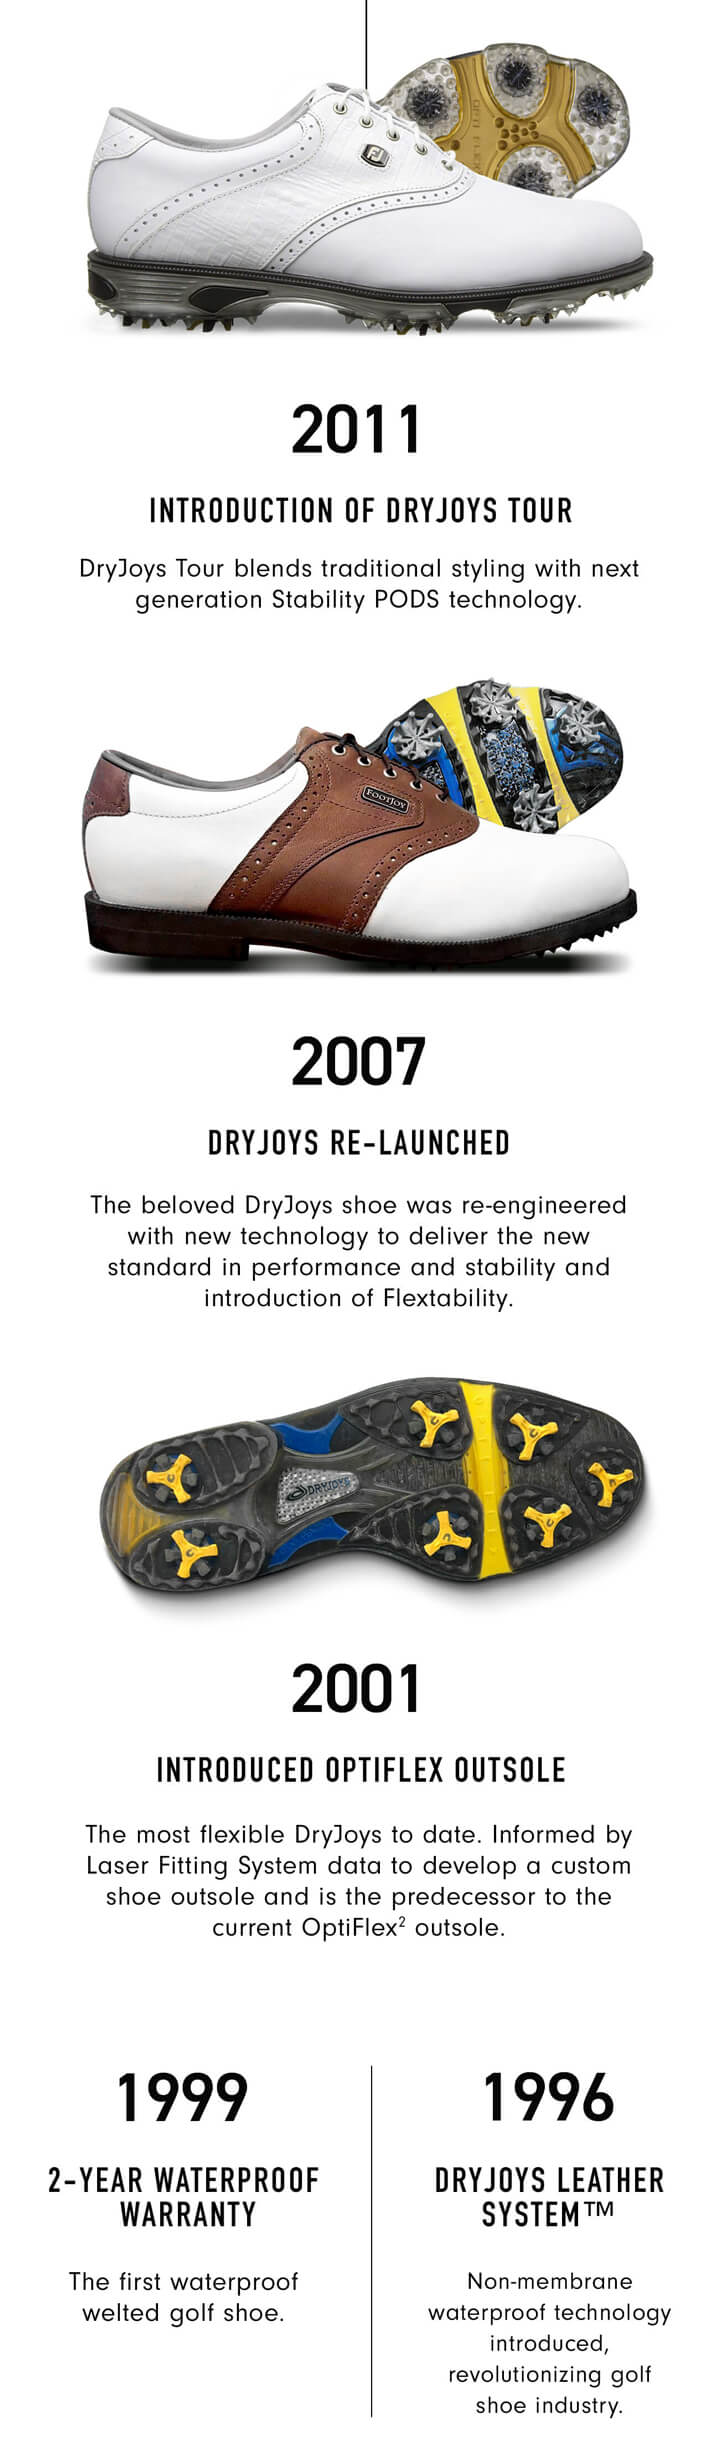 FootJoy Dryjoys Limited Edition - Find Out More